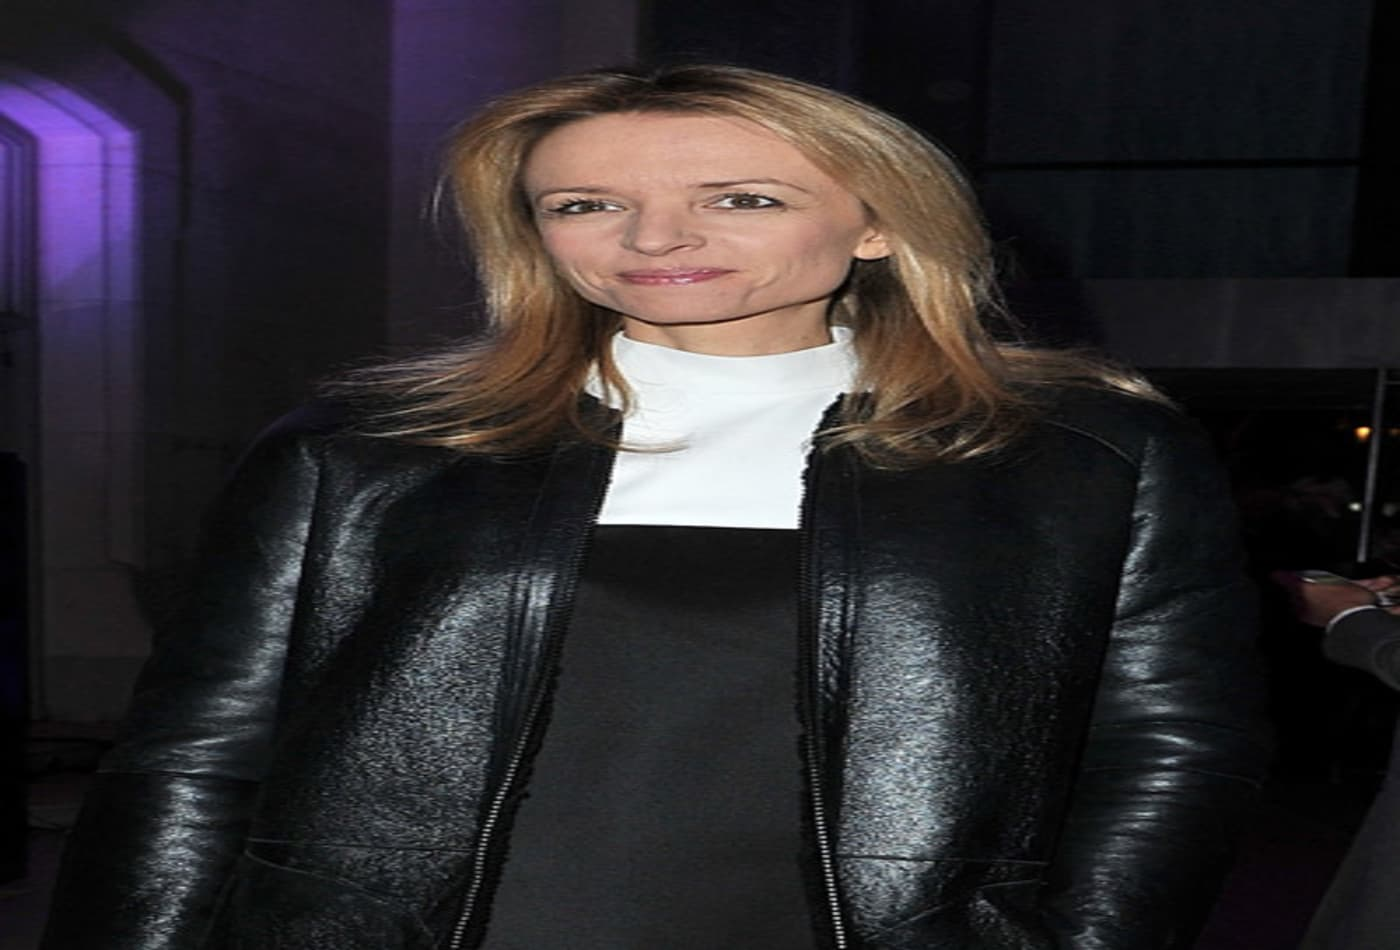 power-broker-of-fashion-Delphine-Arnault.jpg